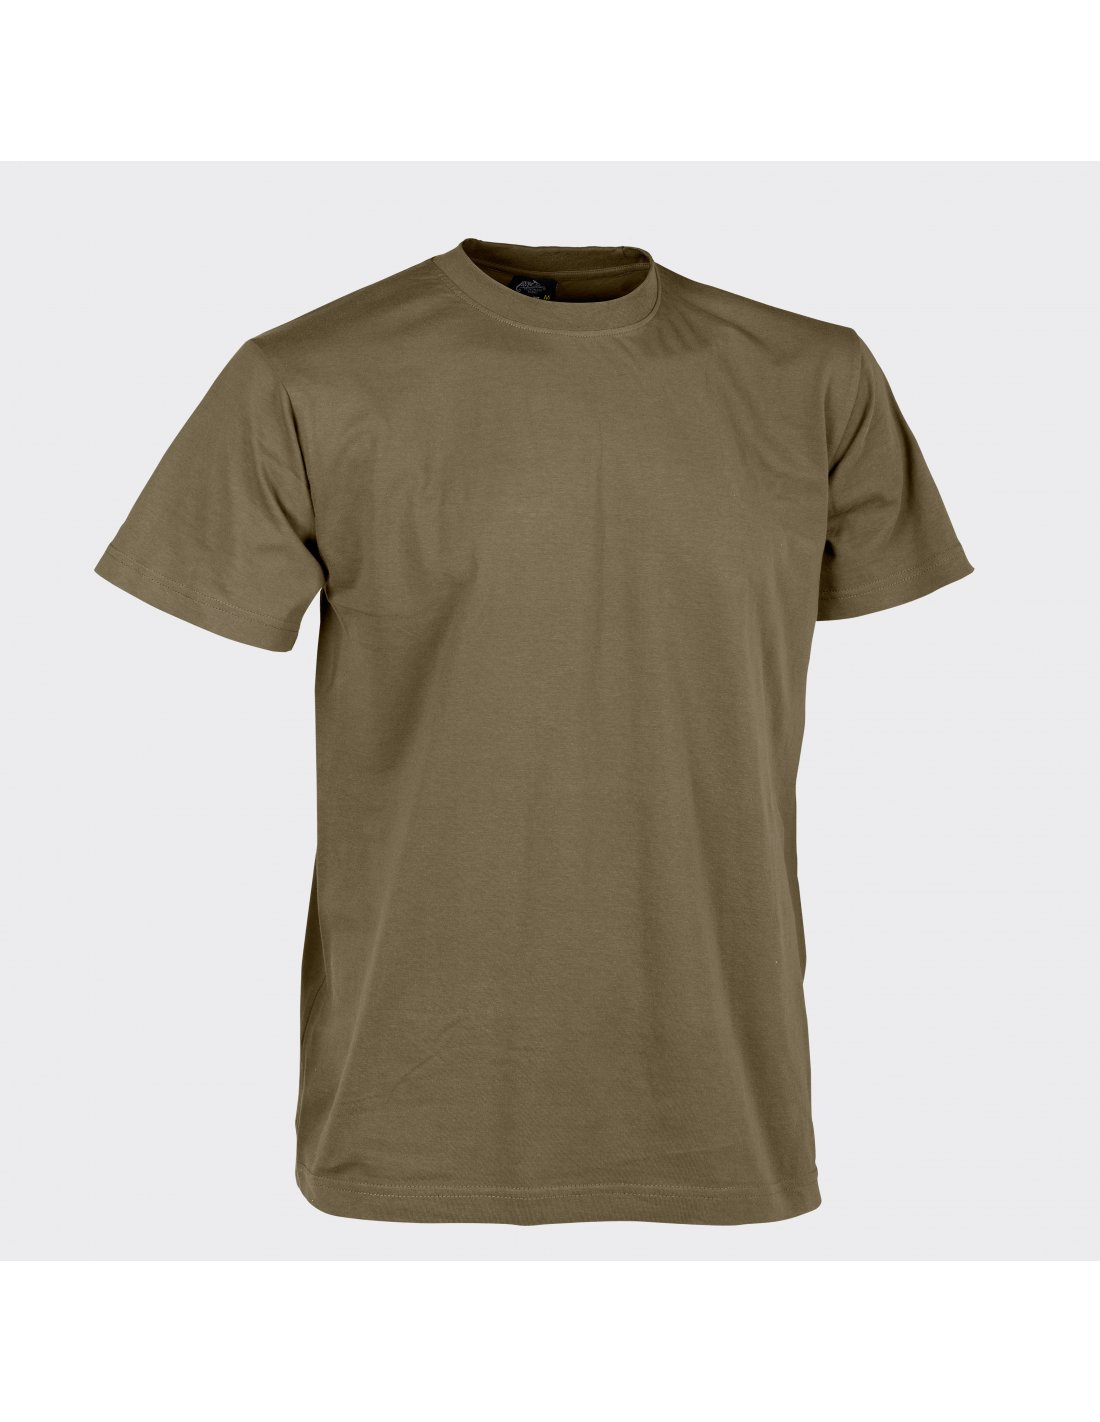 Classic Army T Shirt Cotton Coyote Tan Combat Wear